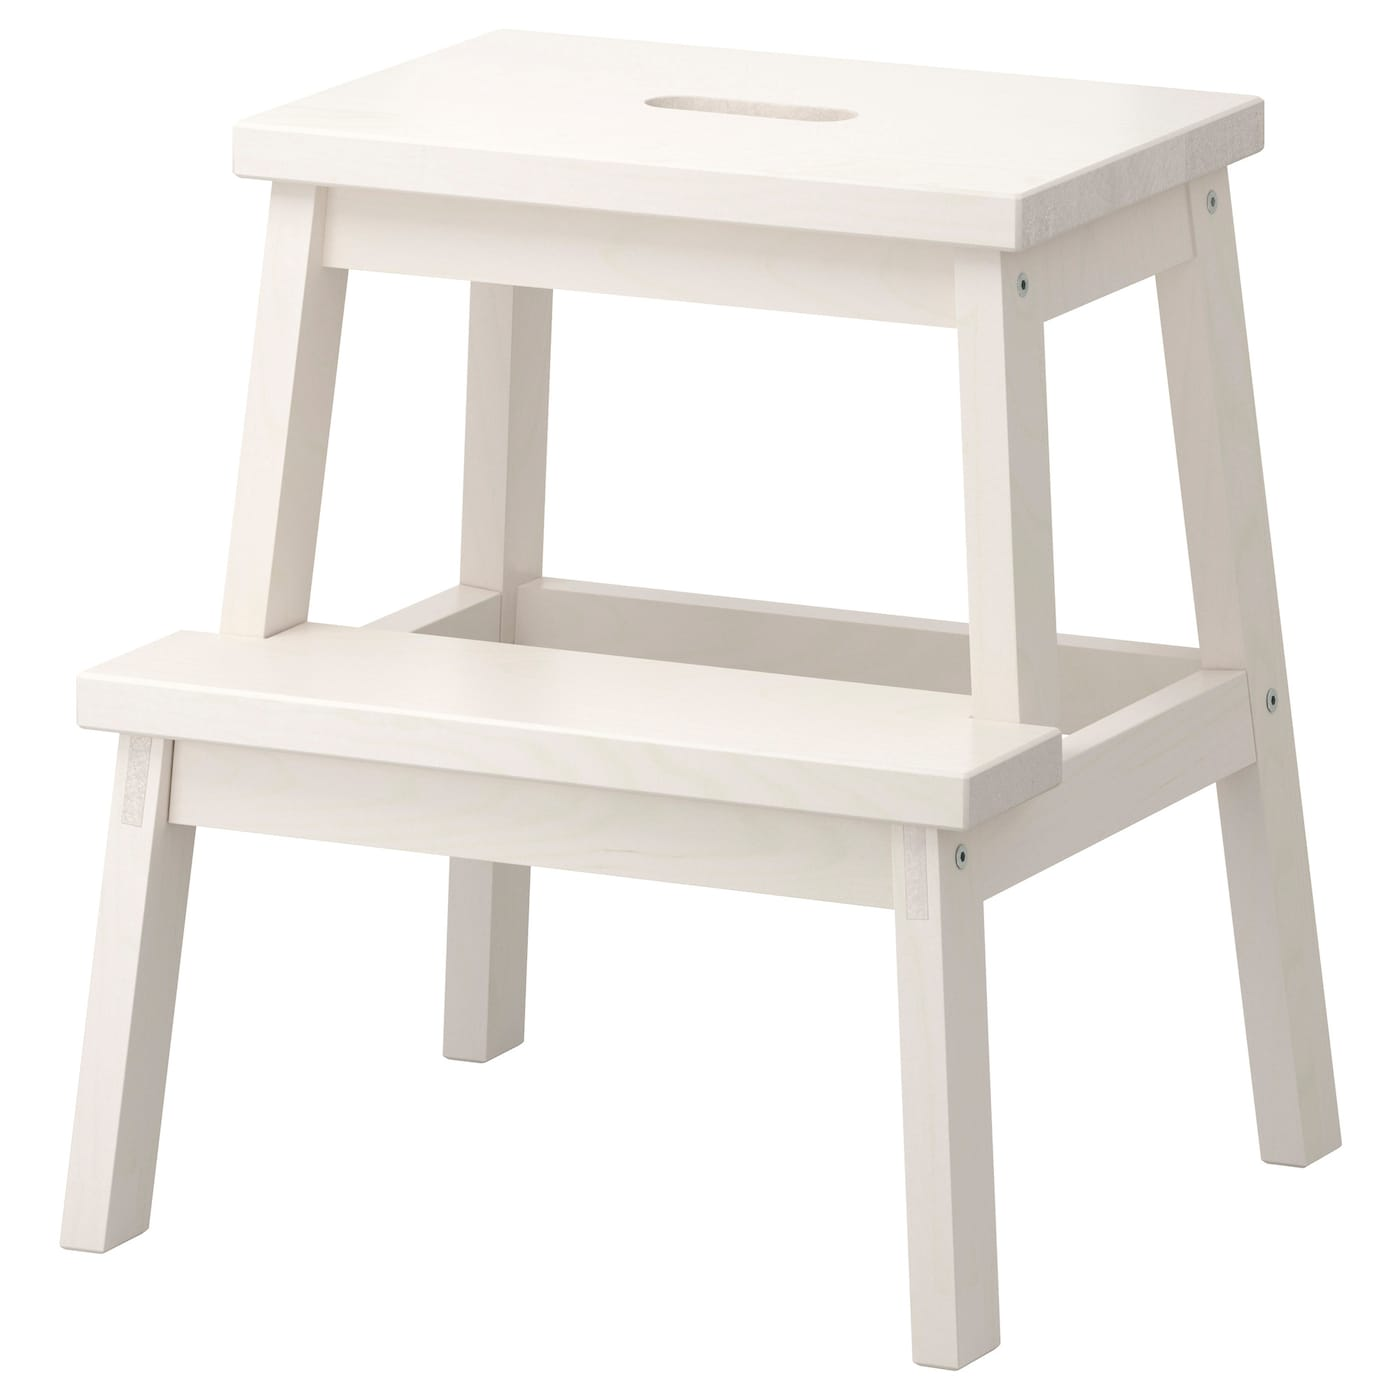 BEKVÄM Step stool White 50 cm - IKEA